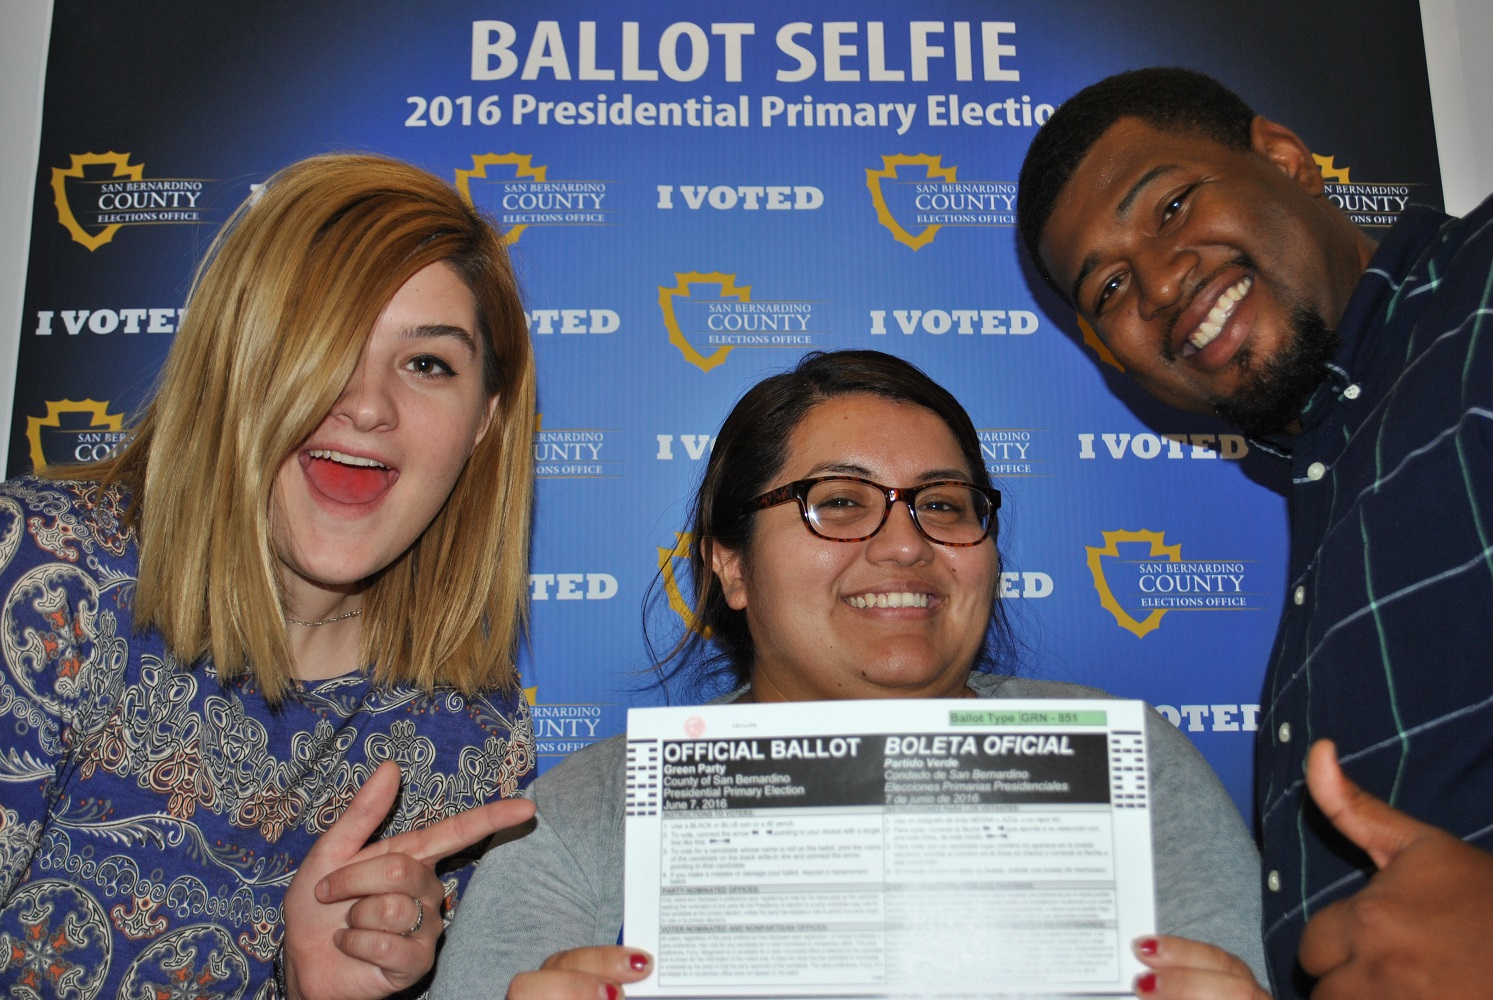 Pictured from left to right, Elections Office staff members: Ashleigh Bachar, Roxana Castro, and Travis Weaver